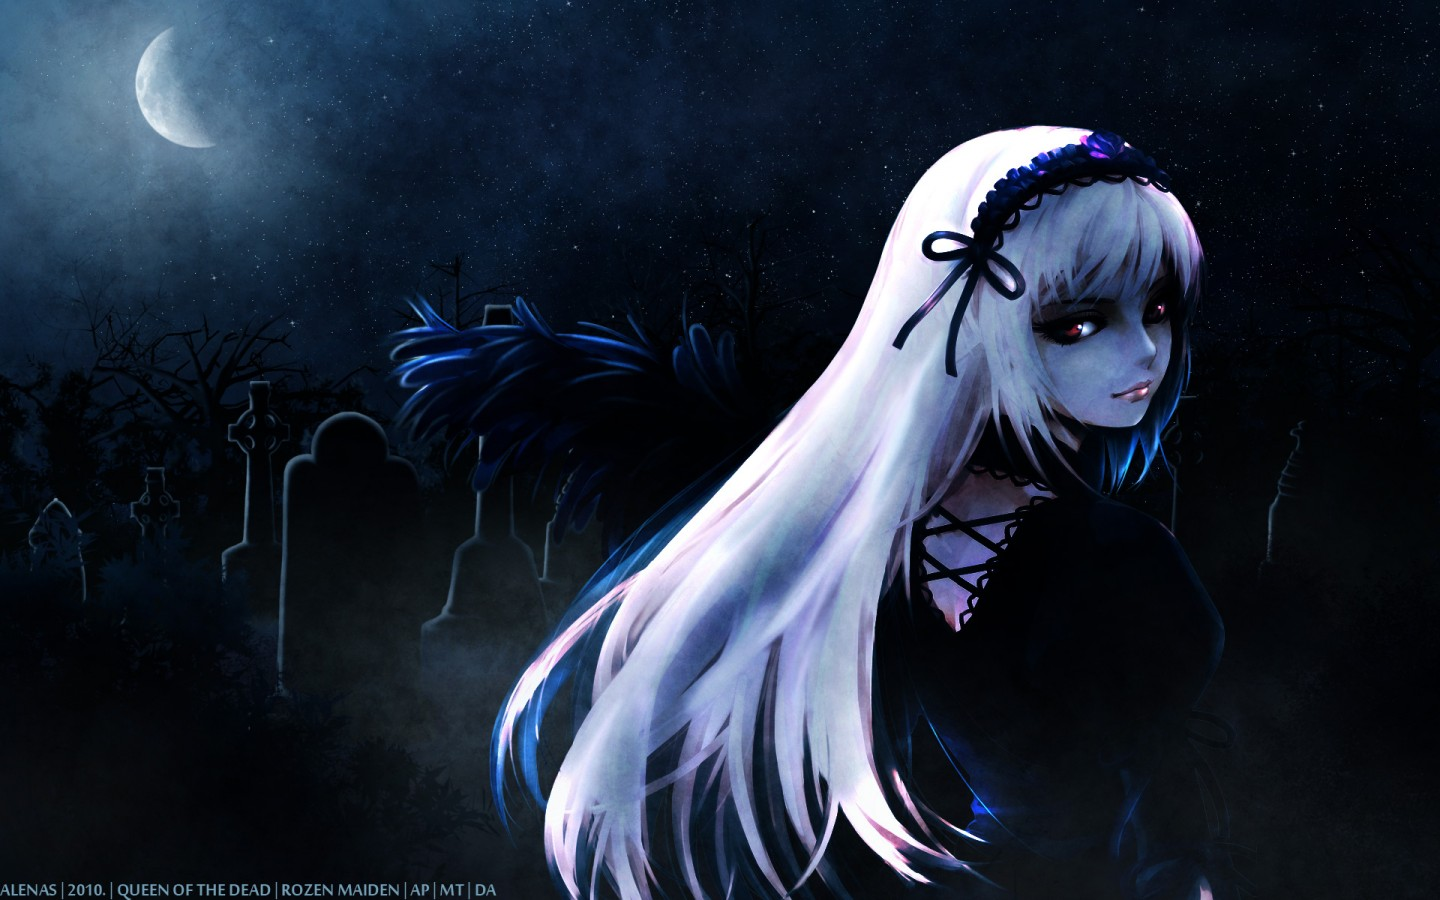 45 dark anime girl wallpaper on wallpapersafari - Beautiful girl anime wallpaper ...